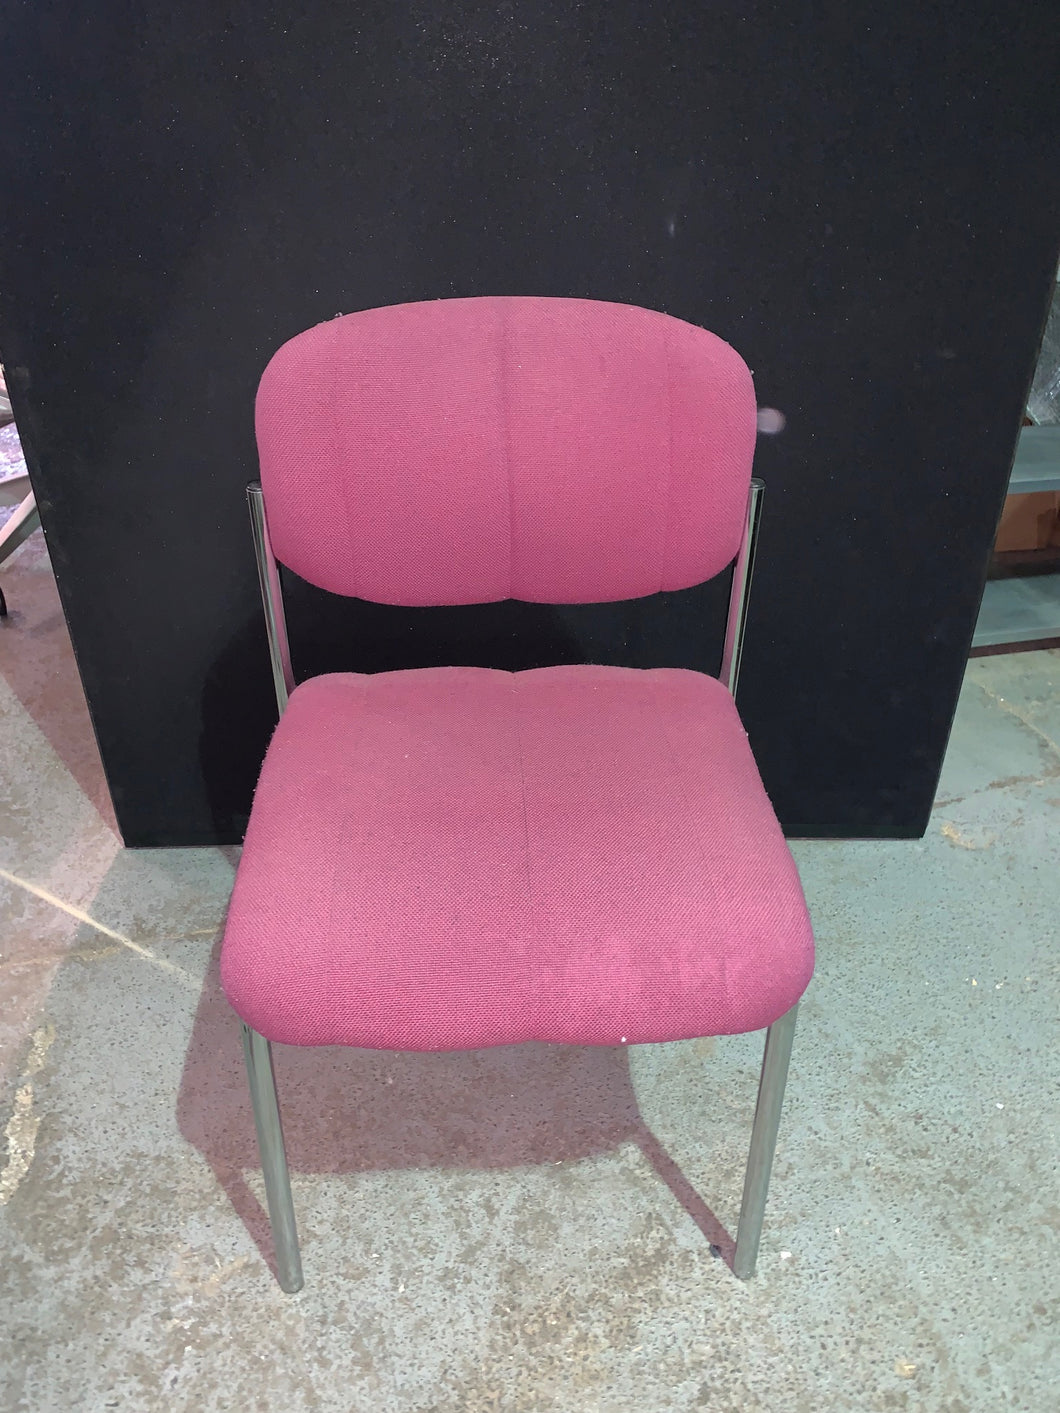 Maroon Meeting/Reception Chair - Flogit2us.com